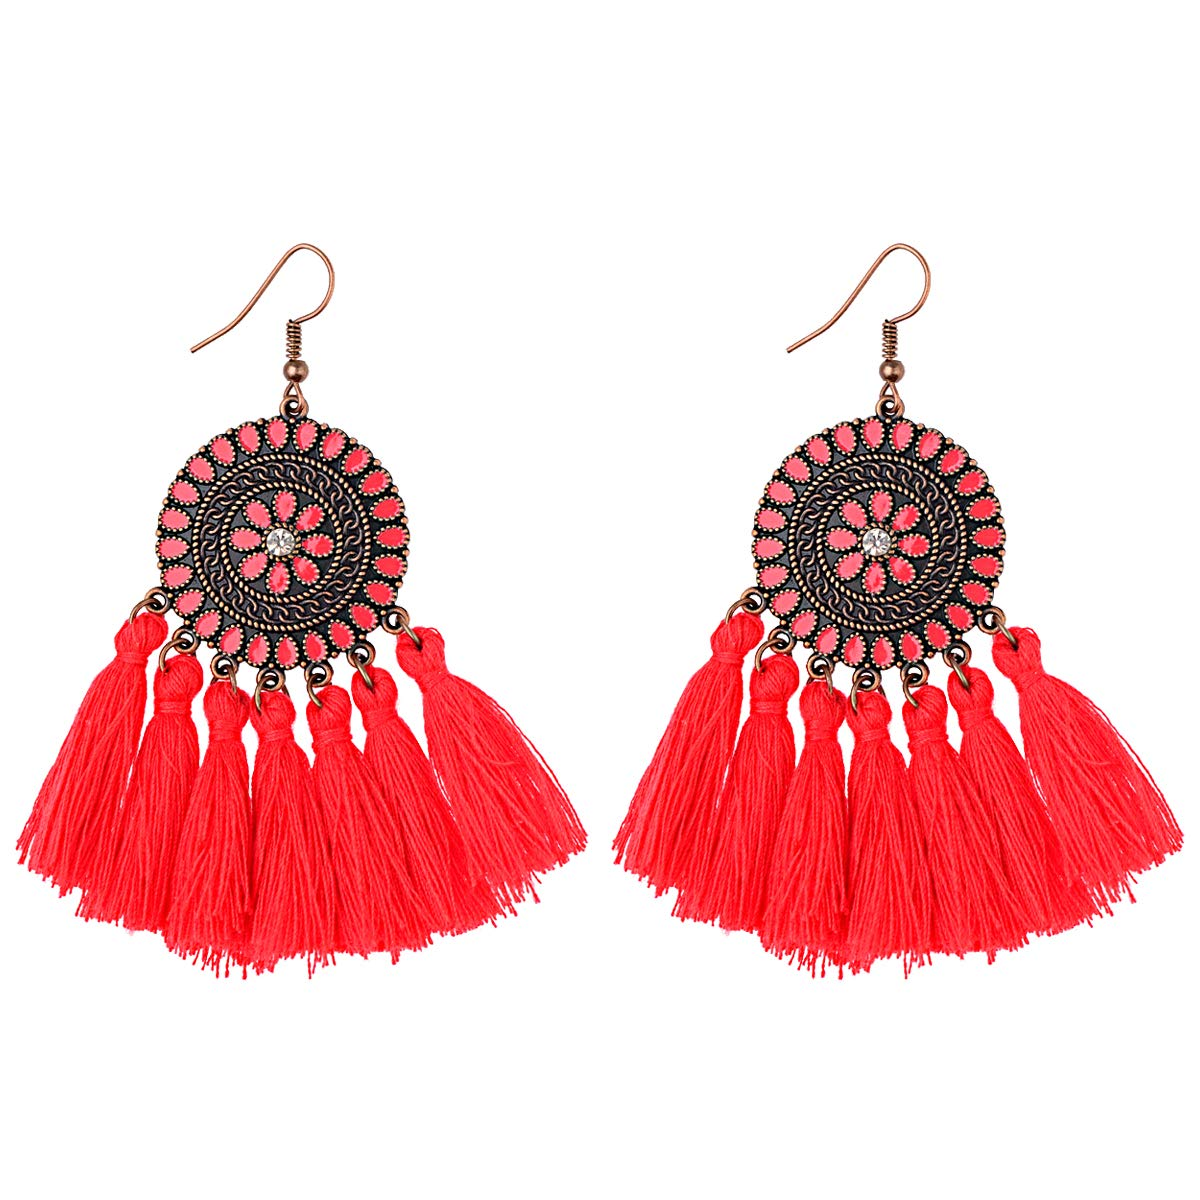 3CTOP 2019 Europe and The United States Retro Bohemian National Earrings Earrings Seaside Holiday Temperament Fashion Personality Tassel Earrings Fairy